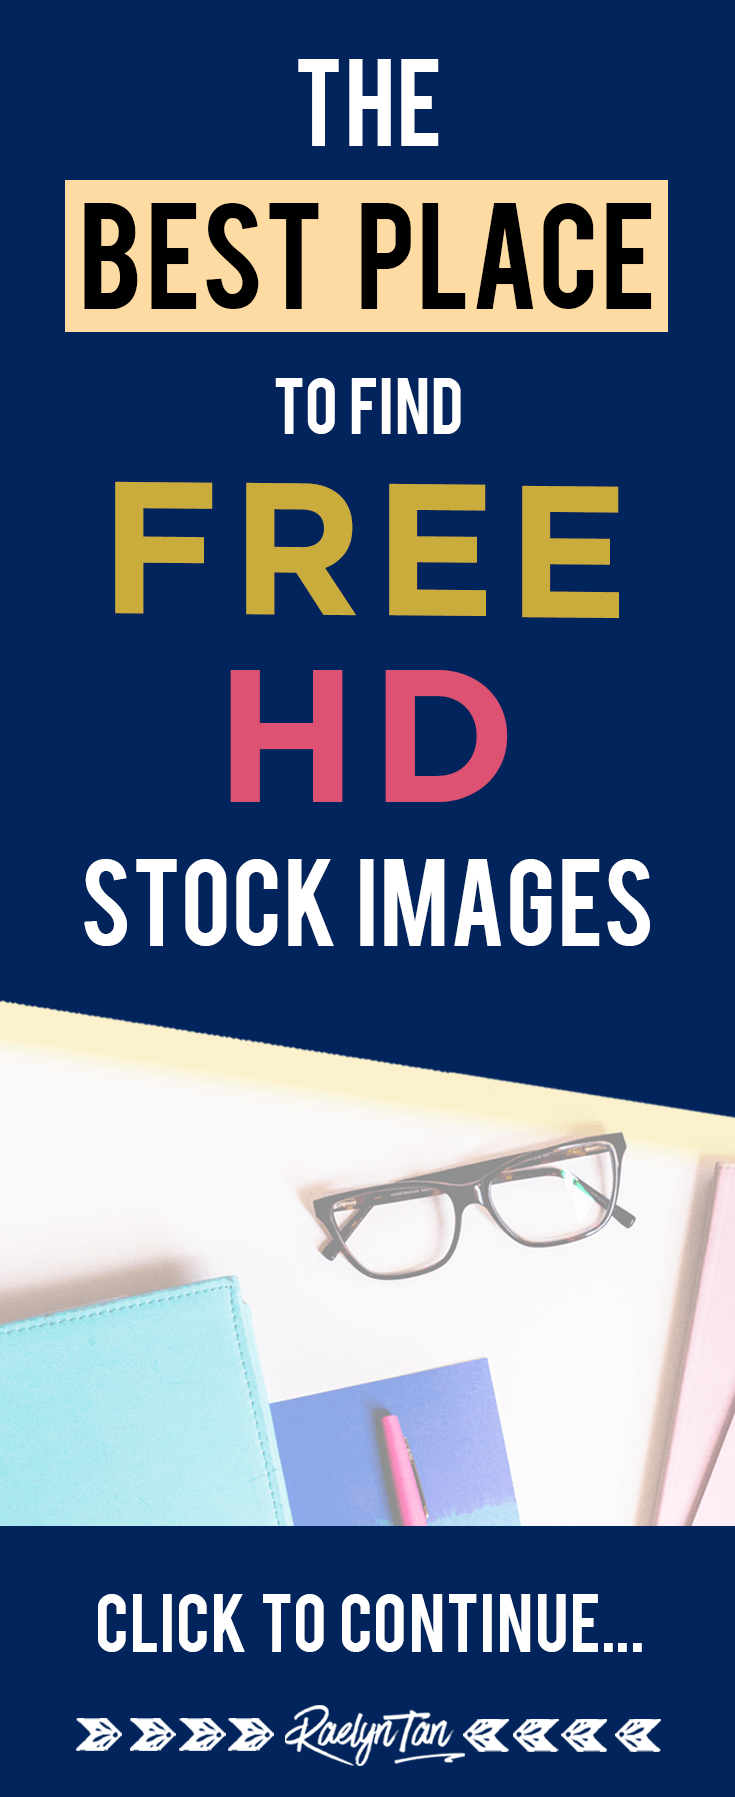 Get free, beautiful, high quality, royalty free stock images. Find out what's the best place to get images for your business & social media, background graphics for your blog/ website, images of people & flowers, and more. Let's get into it right now!